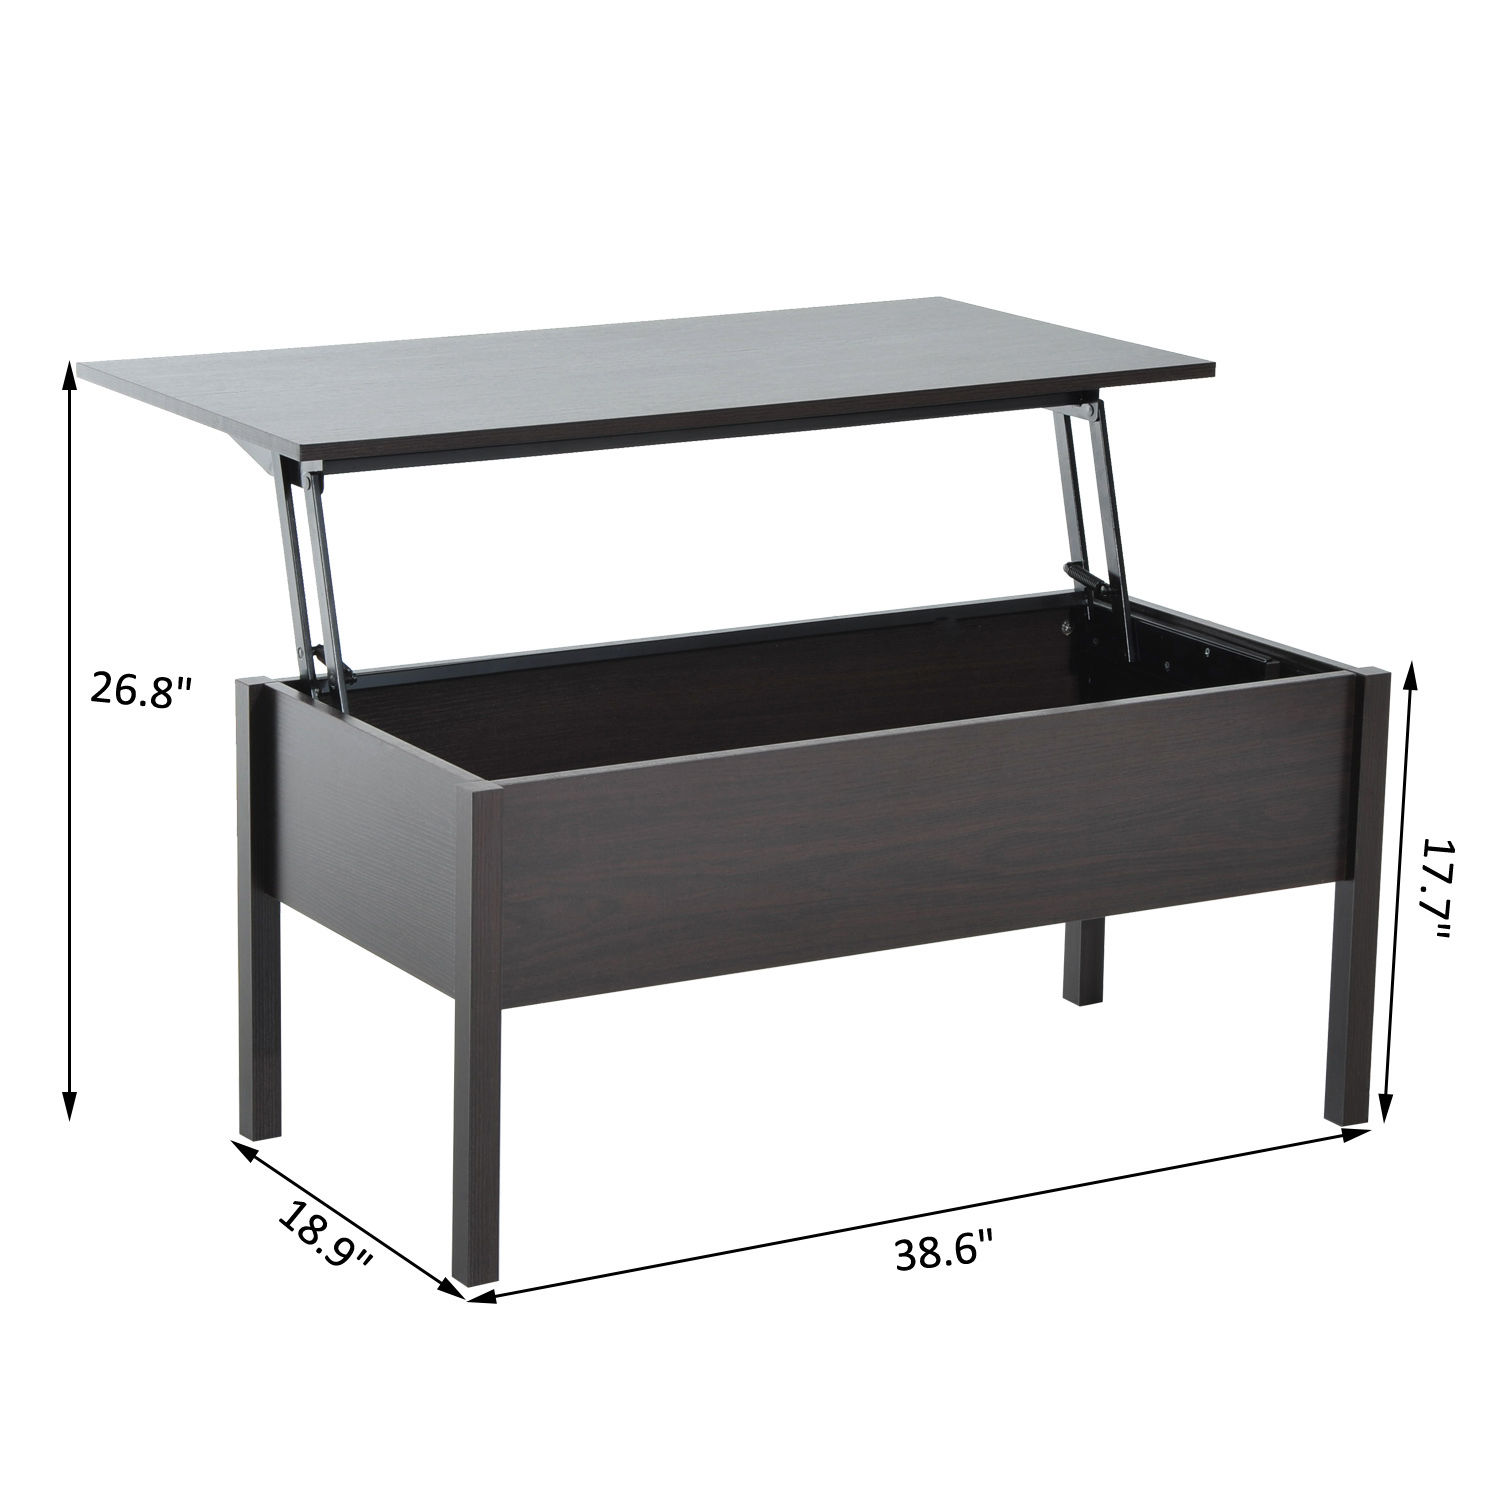 HOMCOM-Wood-Coffee-Table-End-Table-With-Lift-Top-Storage-Shelf-Home-Furniture thumbnail 9